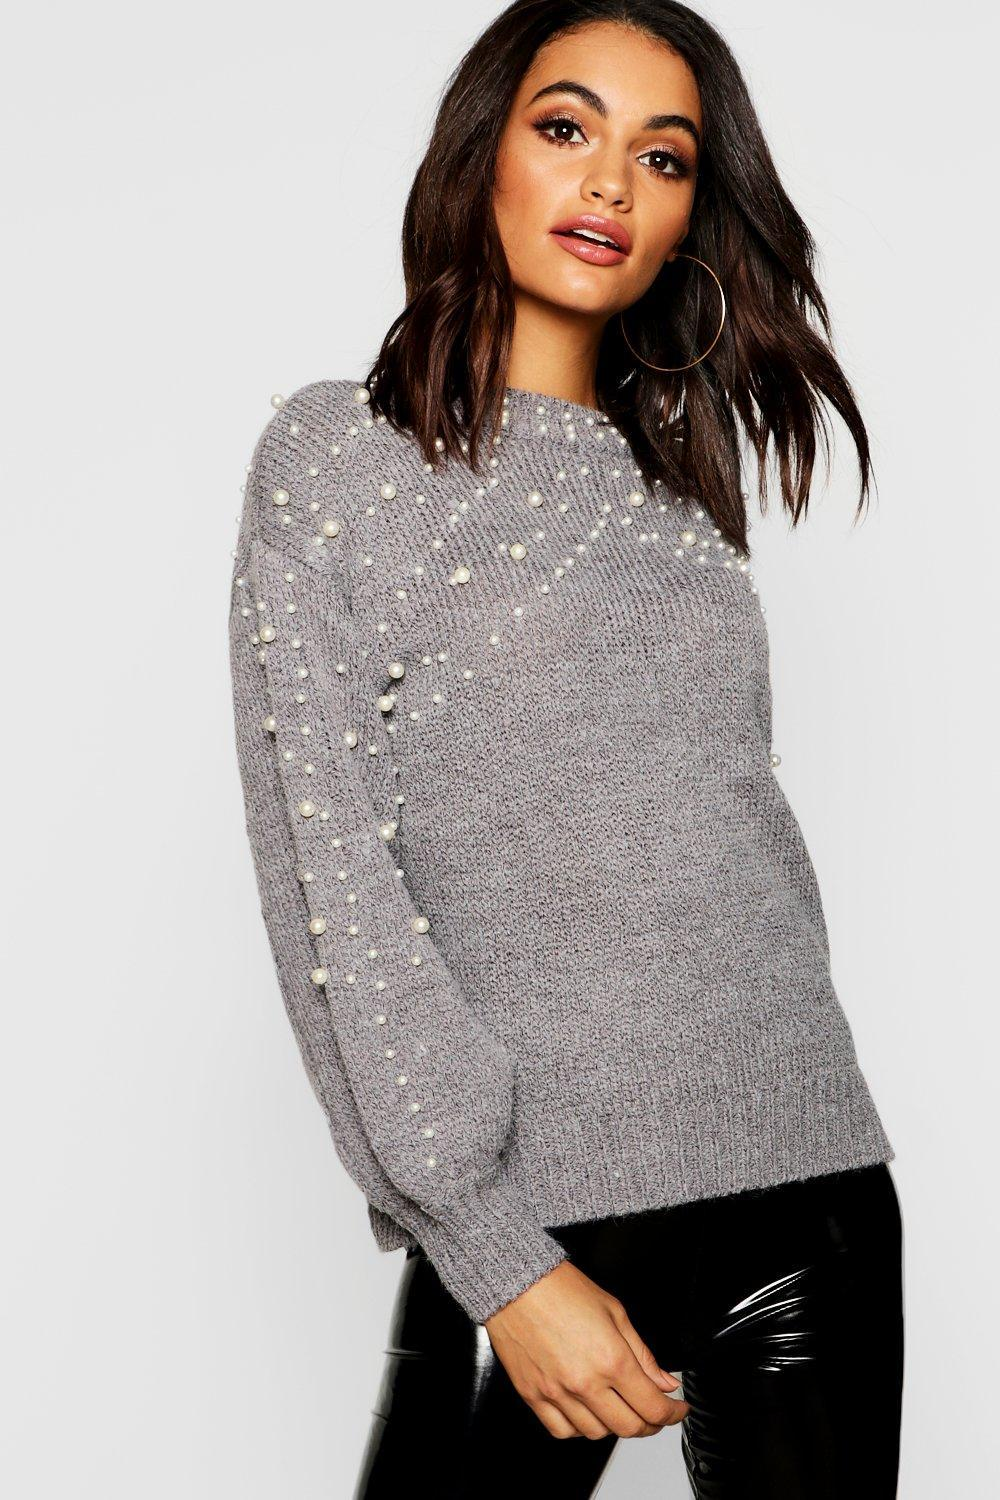 c46c5e950d0ea Boohoo. Women's Pearl Detail Knitted Oversized Sweater